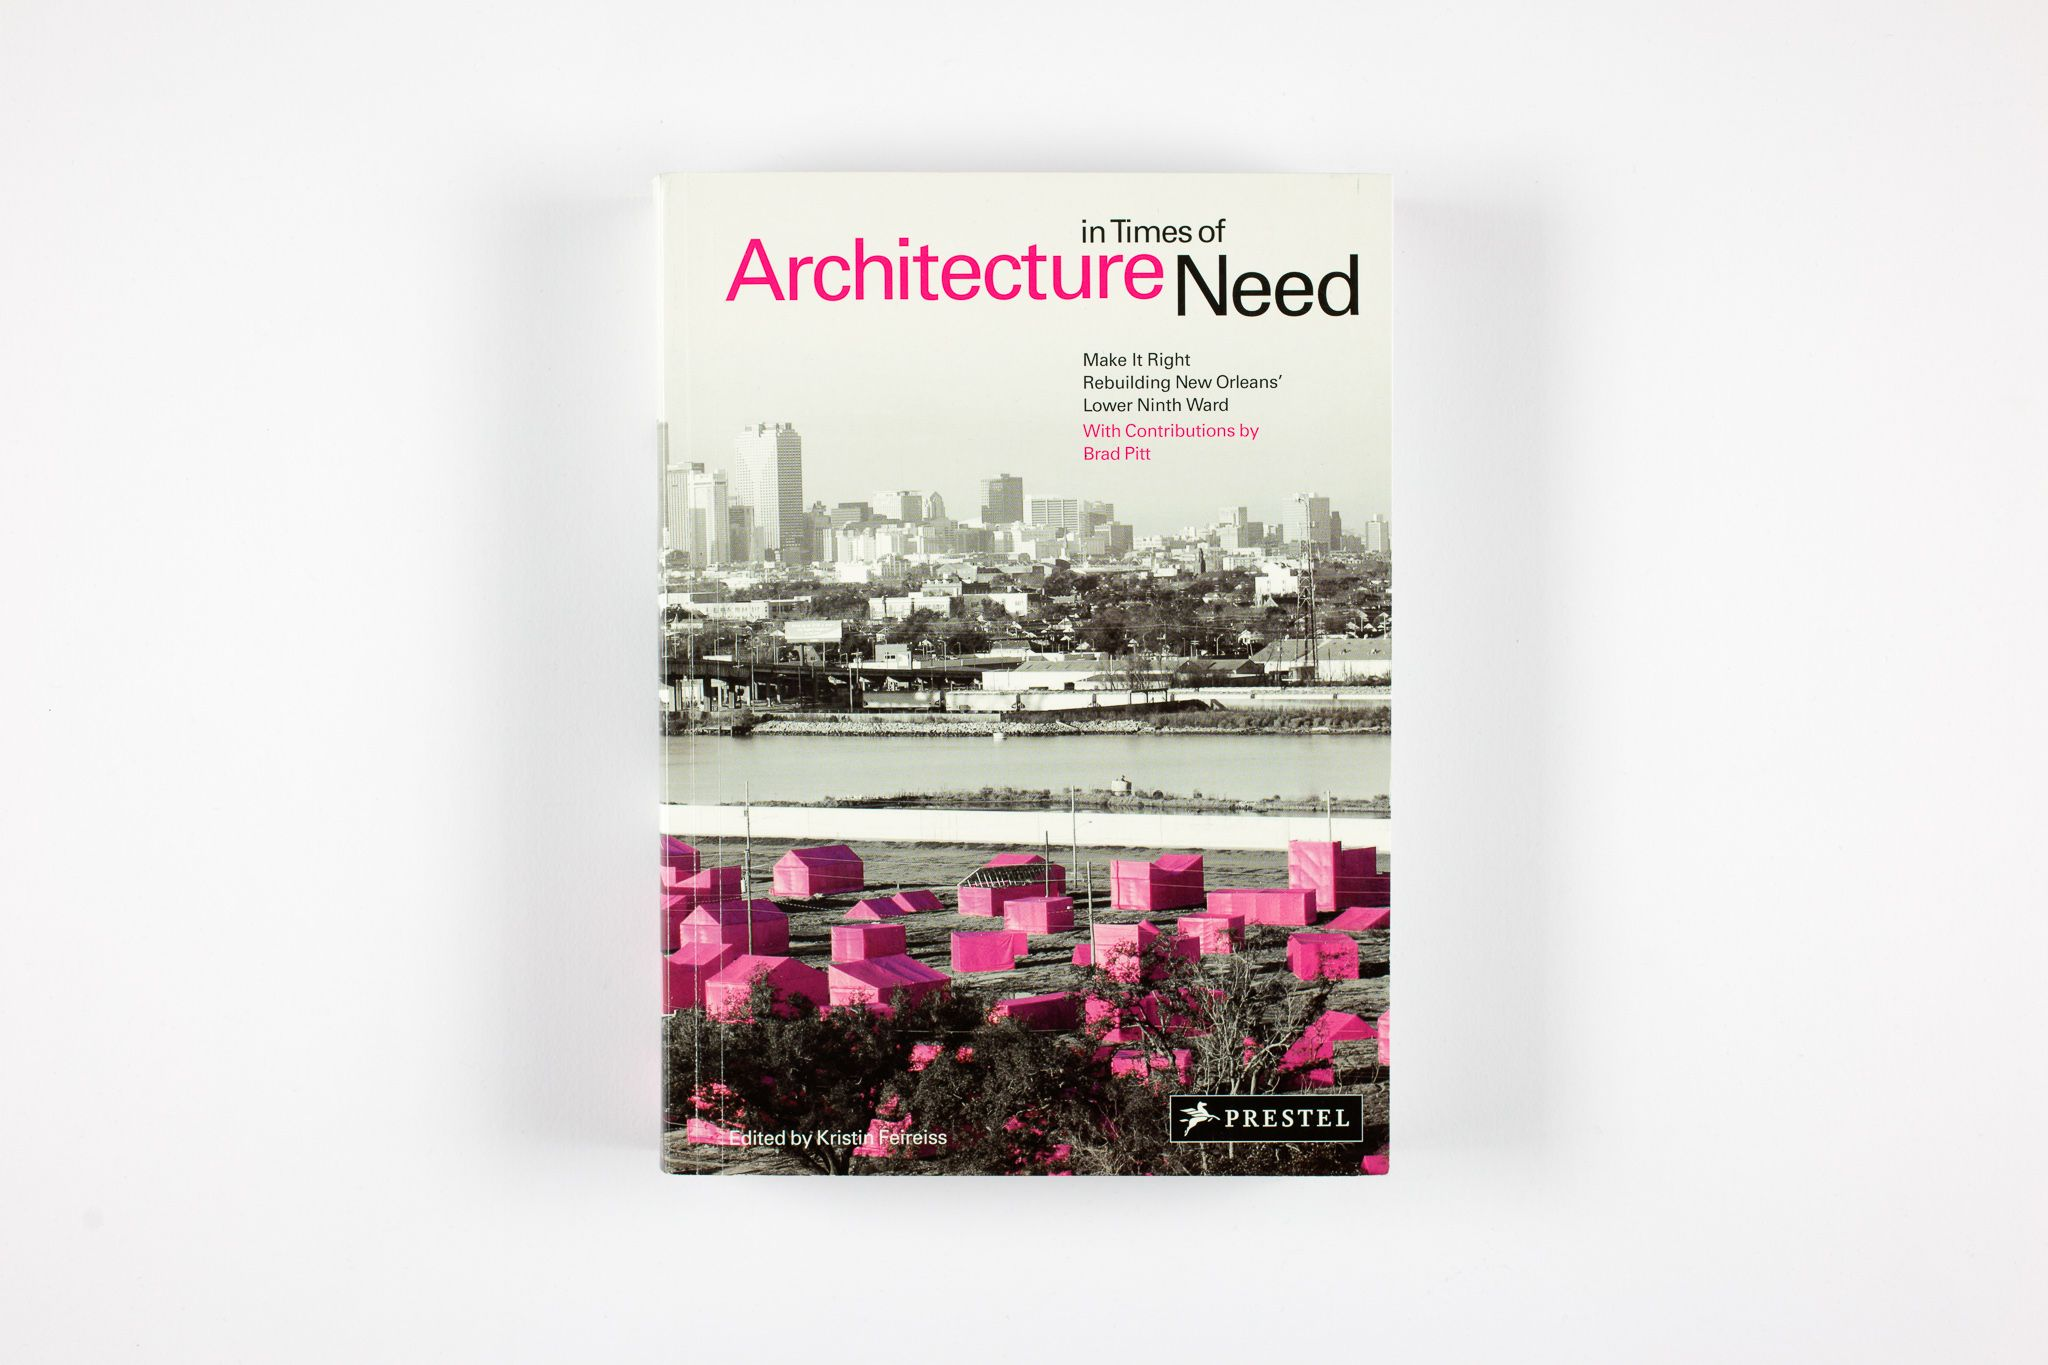 ARCHITECTURE IN THE TIMES OF NEED Project type: Book     With Contributions by: Brad Pitt     Edited by: Kristin Feireiss     Language: English     Publisher: Prestel Ltd.,1 Edition (September 28, 2009)     Paperback: 488 pages     ISBN: 978-3-7913-4276-4     Price: 29,95 EUR  About the Book